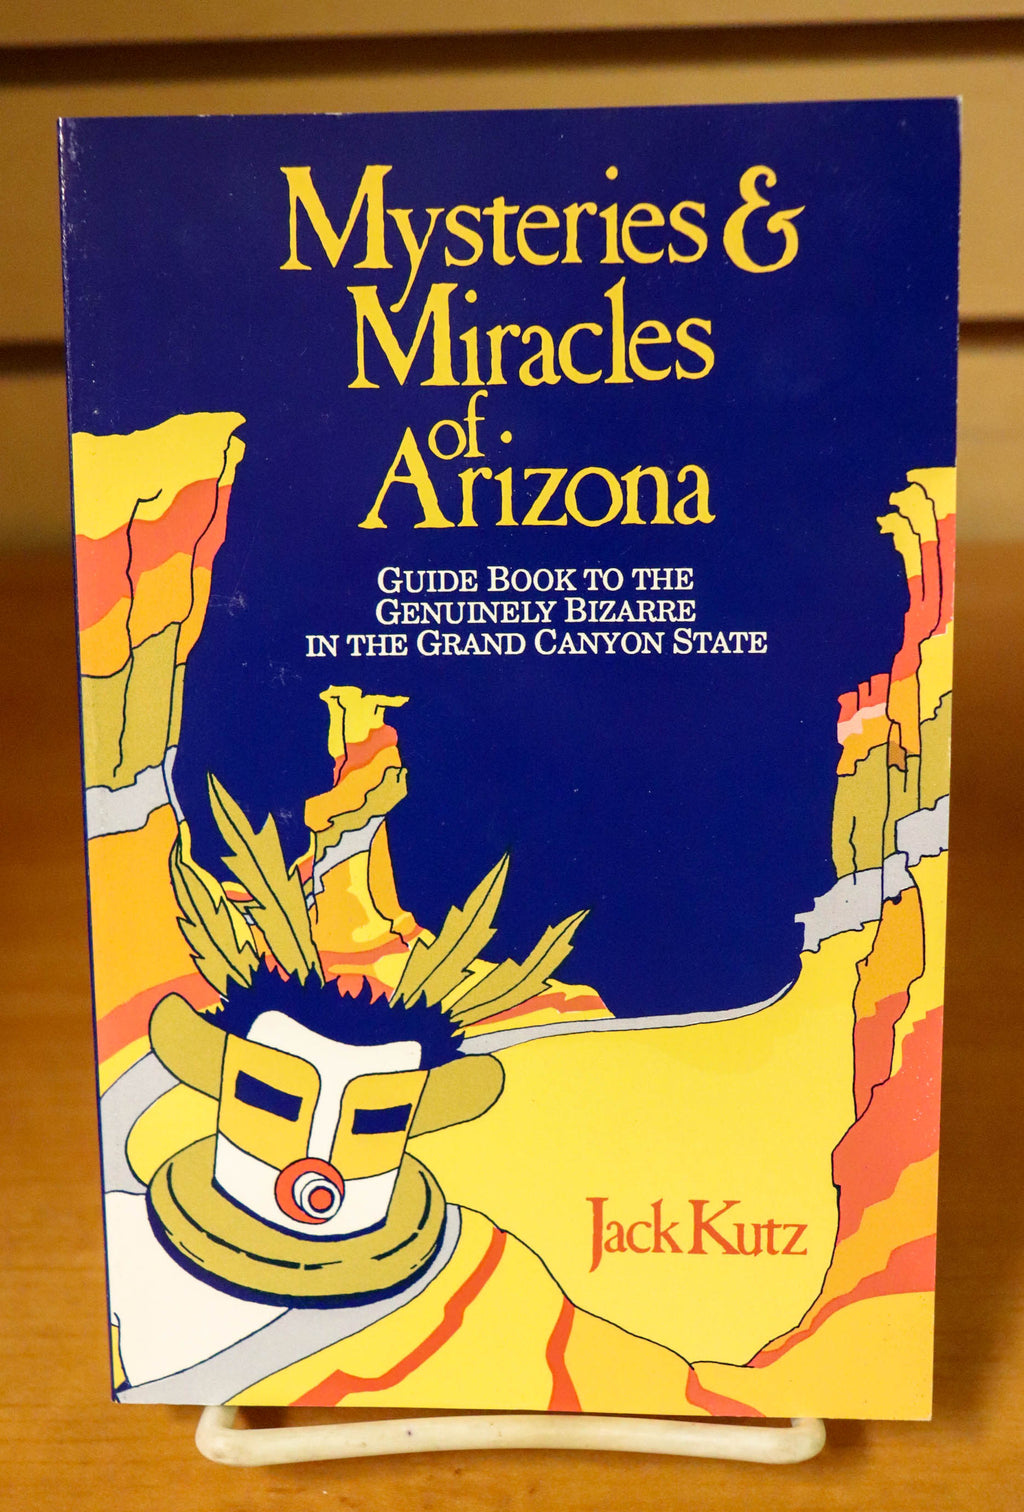 Mysteries and Miracles of Arizona by Jack Kutz